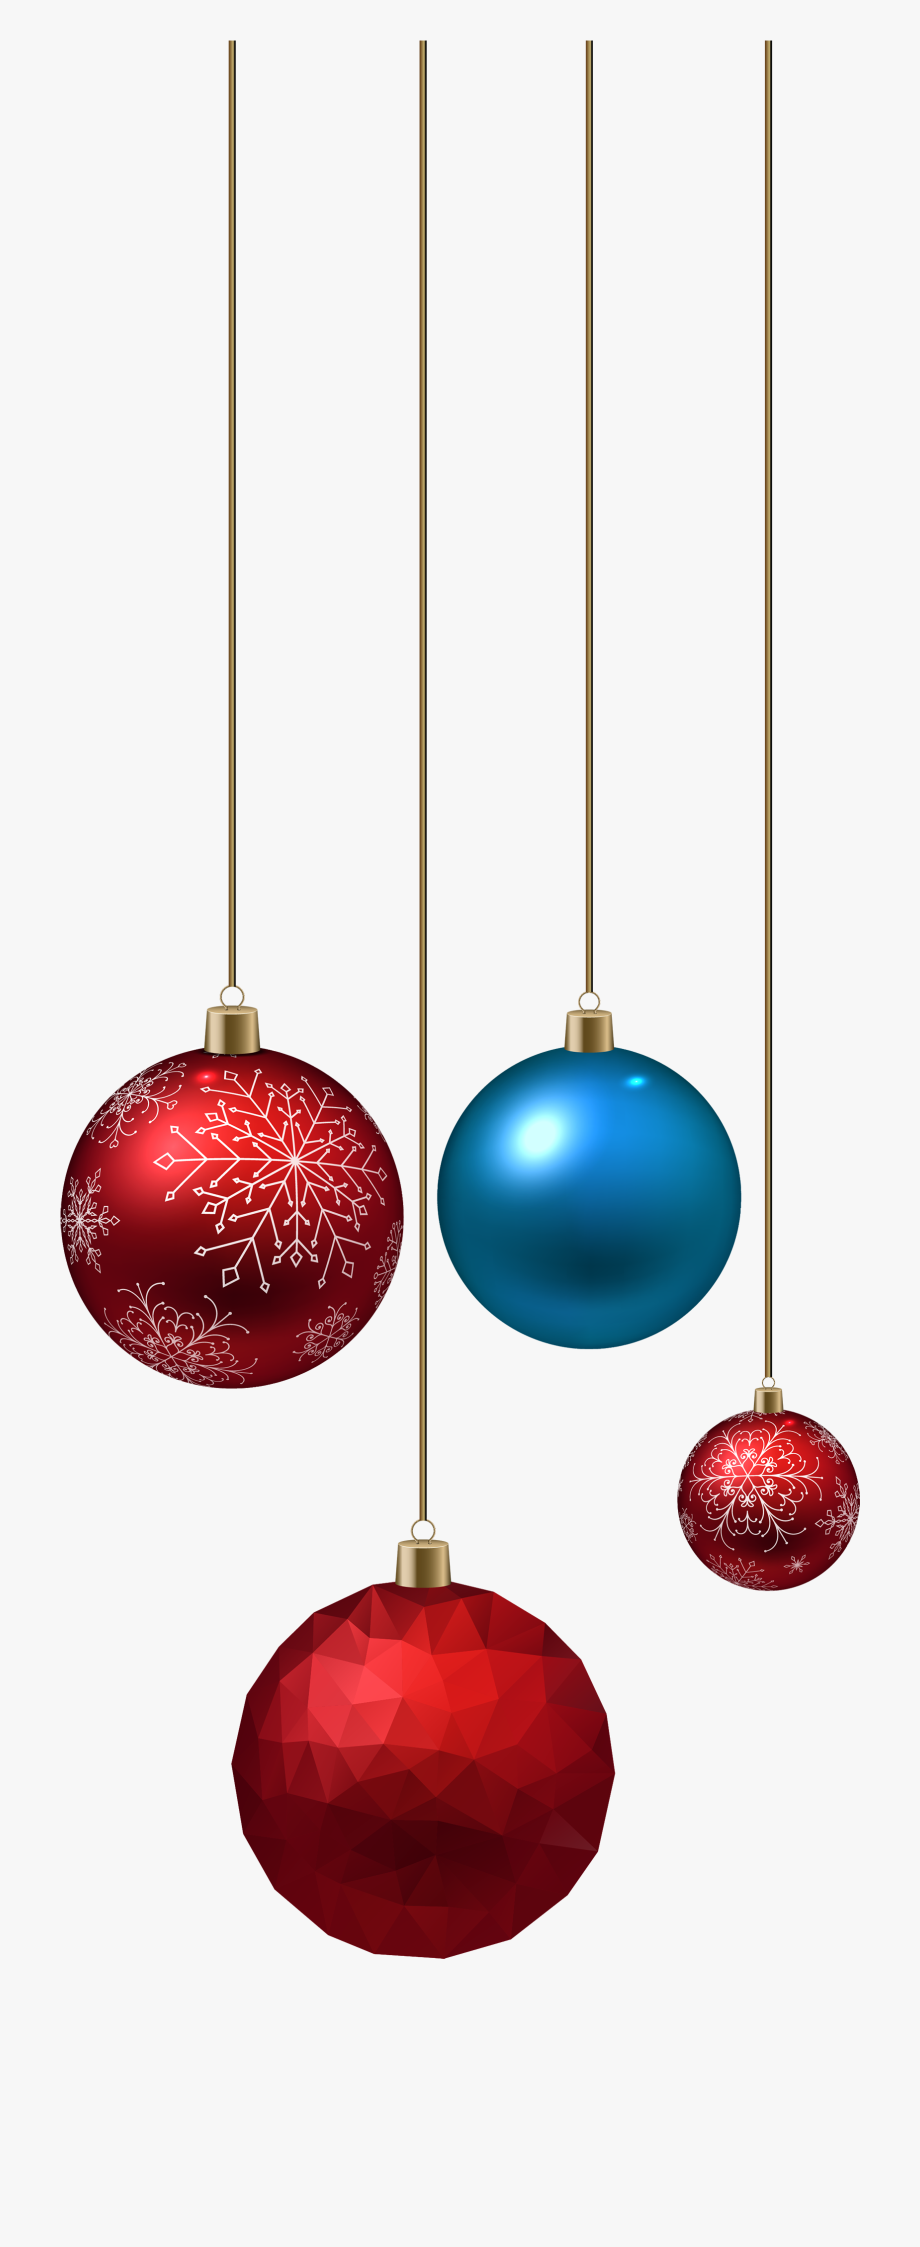 Ball ornament picture frame clipart black and white Boarder Red Christmas Ornaments Png - Png Format Christmas Ball Png ... black and white